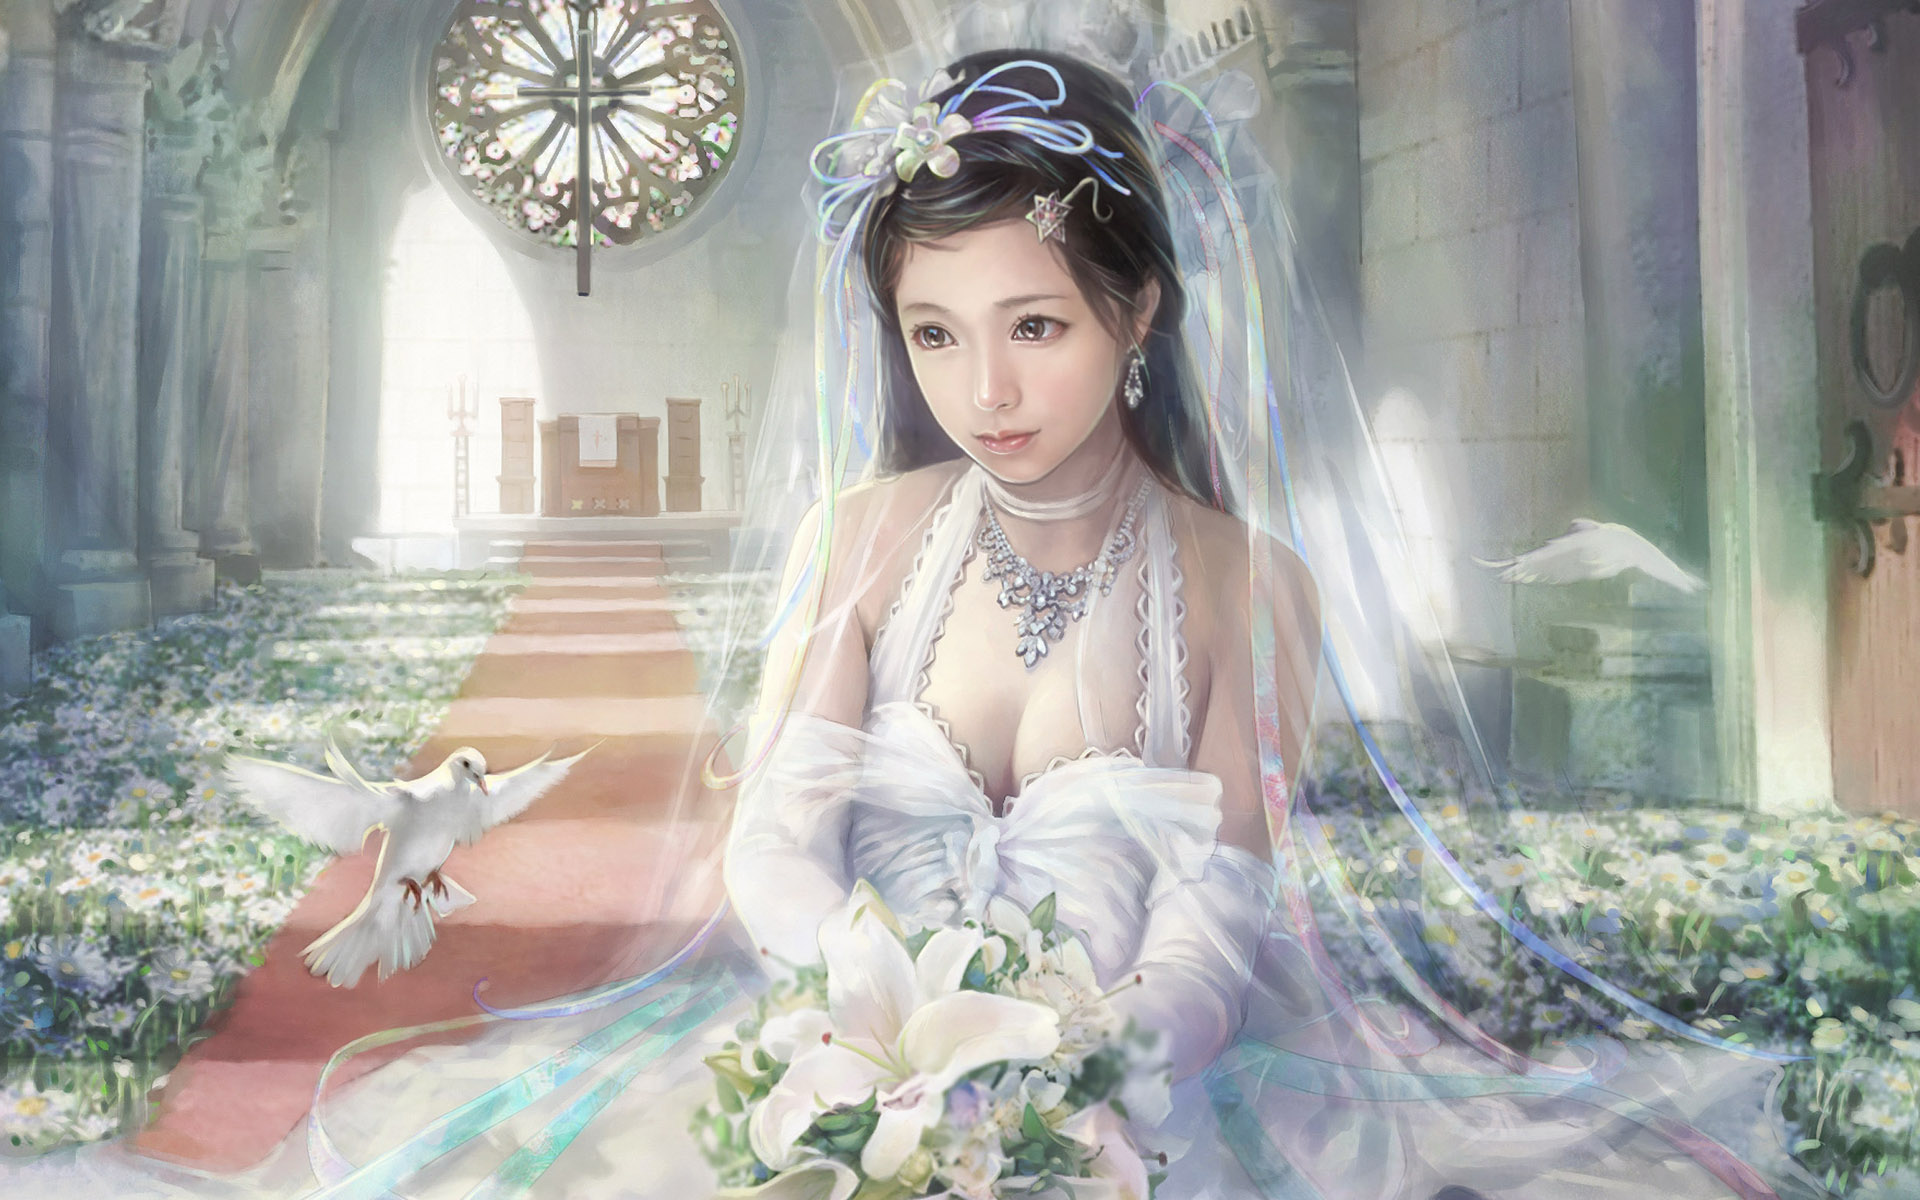 Beautiful bride in a wedding dress at the altar (CG Characters)